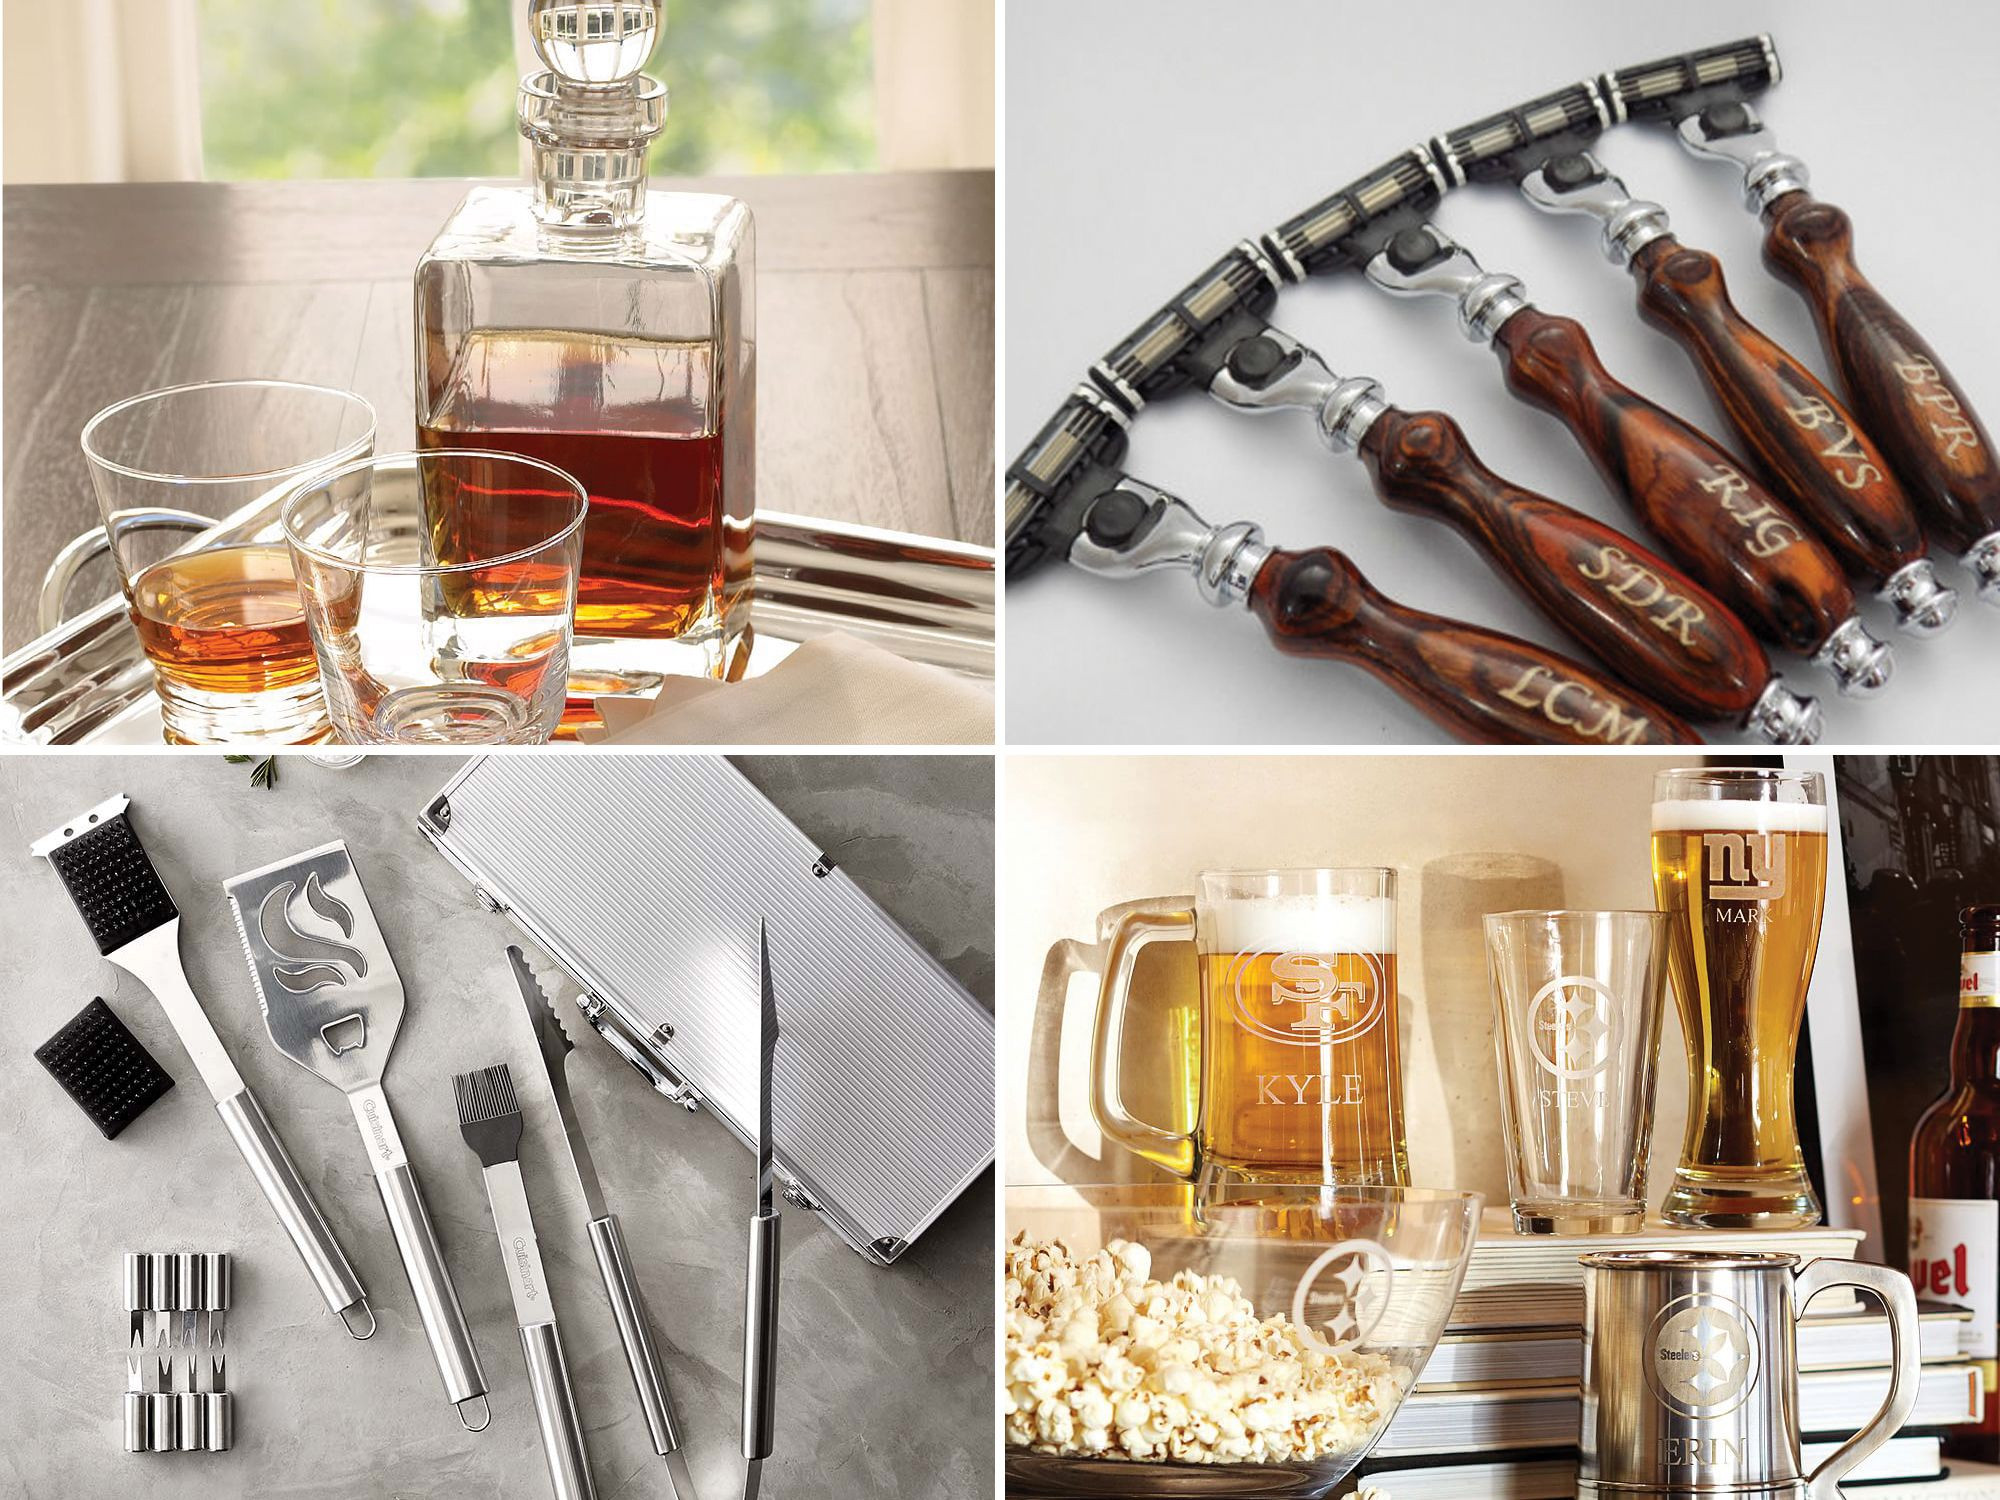 Best ideas about Grooms Gift Ideas . Save or Pin 48 Groomsmen Gift Ideas Now.